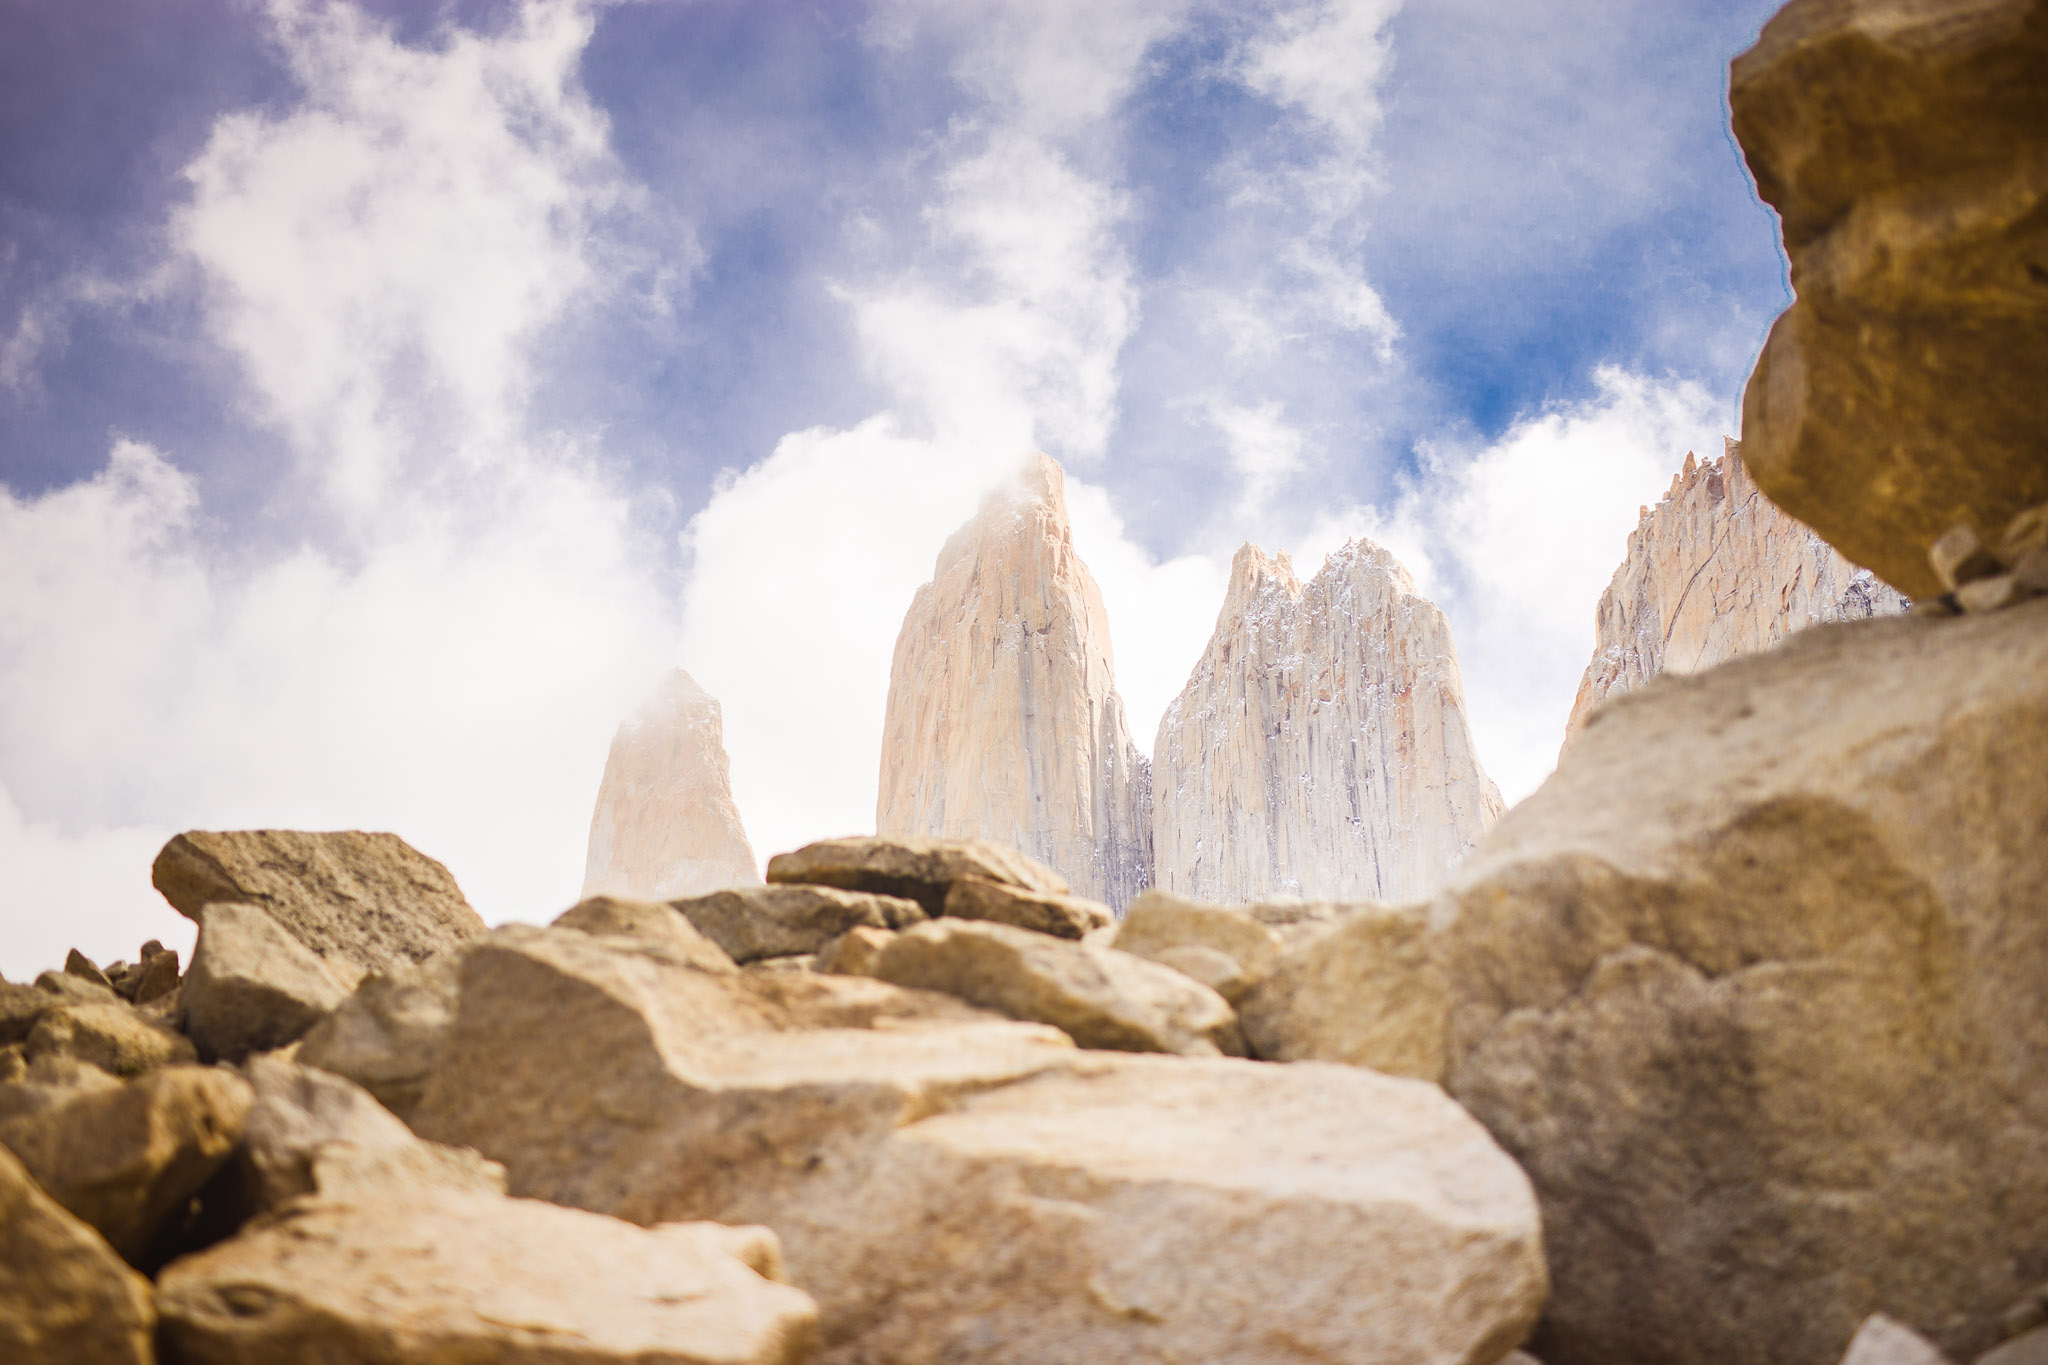 Wedding-Travellers-Overlanding-Destination-Wedding-Chile-Torres-del-Paine-Tres-Torres-Three-Towers-clouds